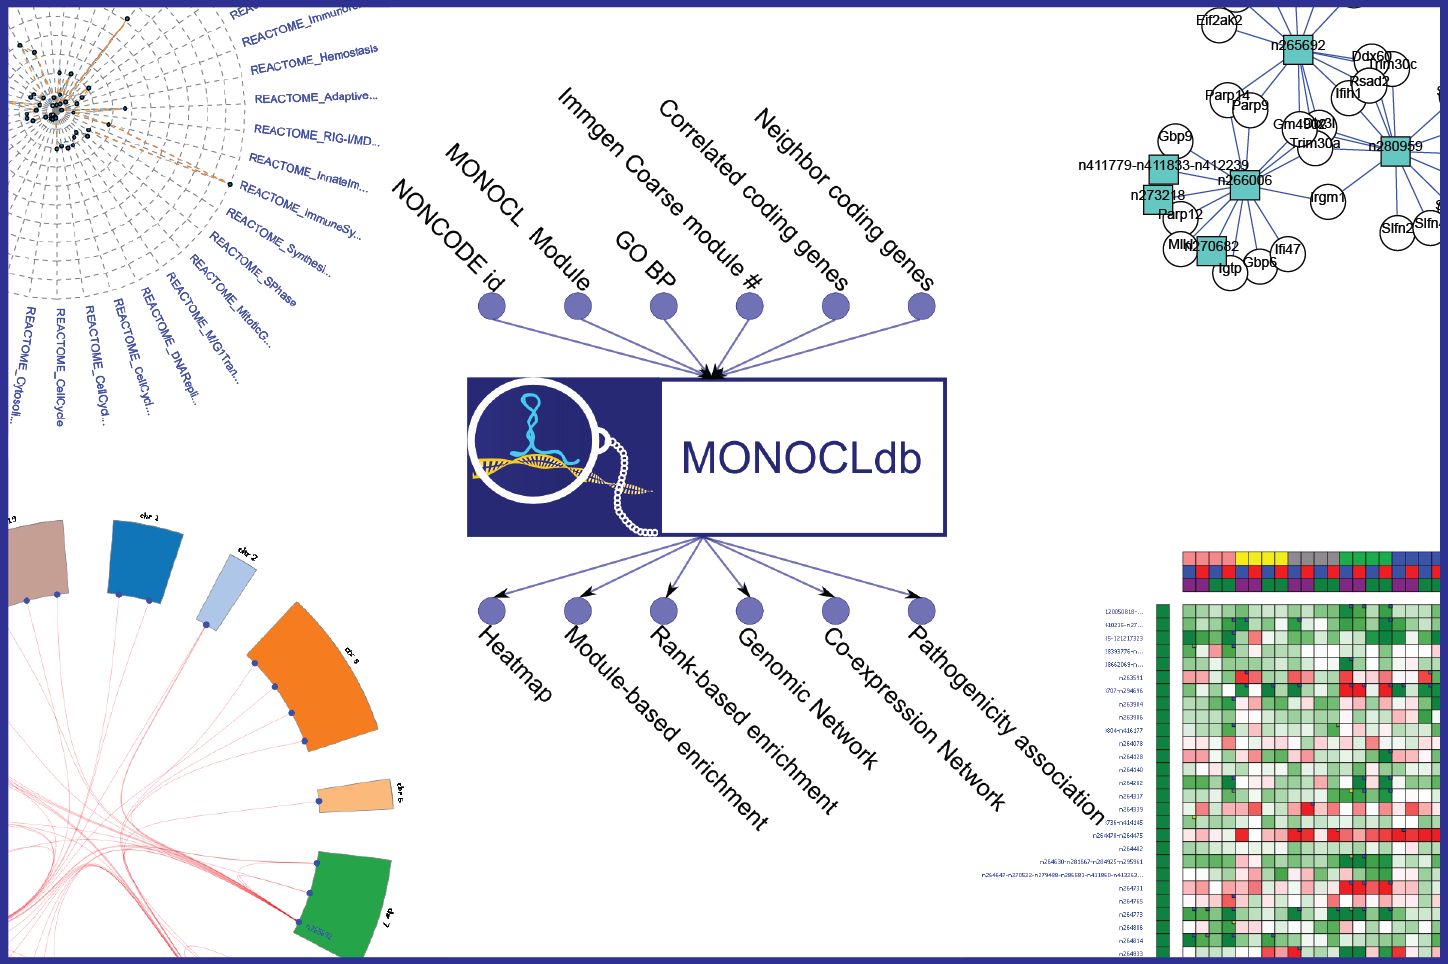 MONOCLdb: is an integrative and interactive database designed to retrieve and visualize annotations, expression profiles and functional enrichment results of long-non coding RNAs (lncRNAs) expressed in Collaborative Cross founder mice in response to respiratory infections caused by influenza and SARS-CoV viruses